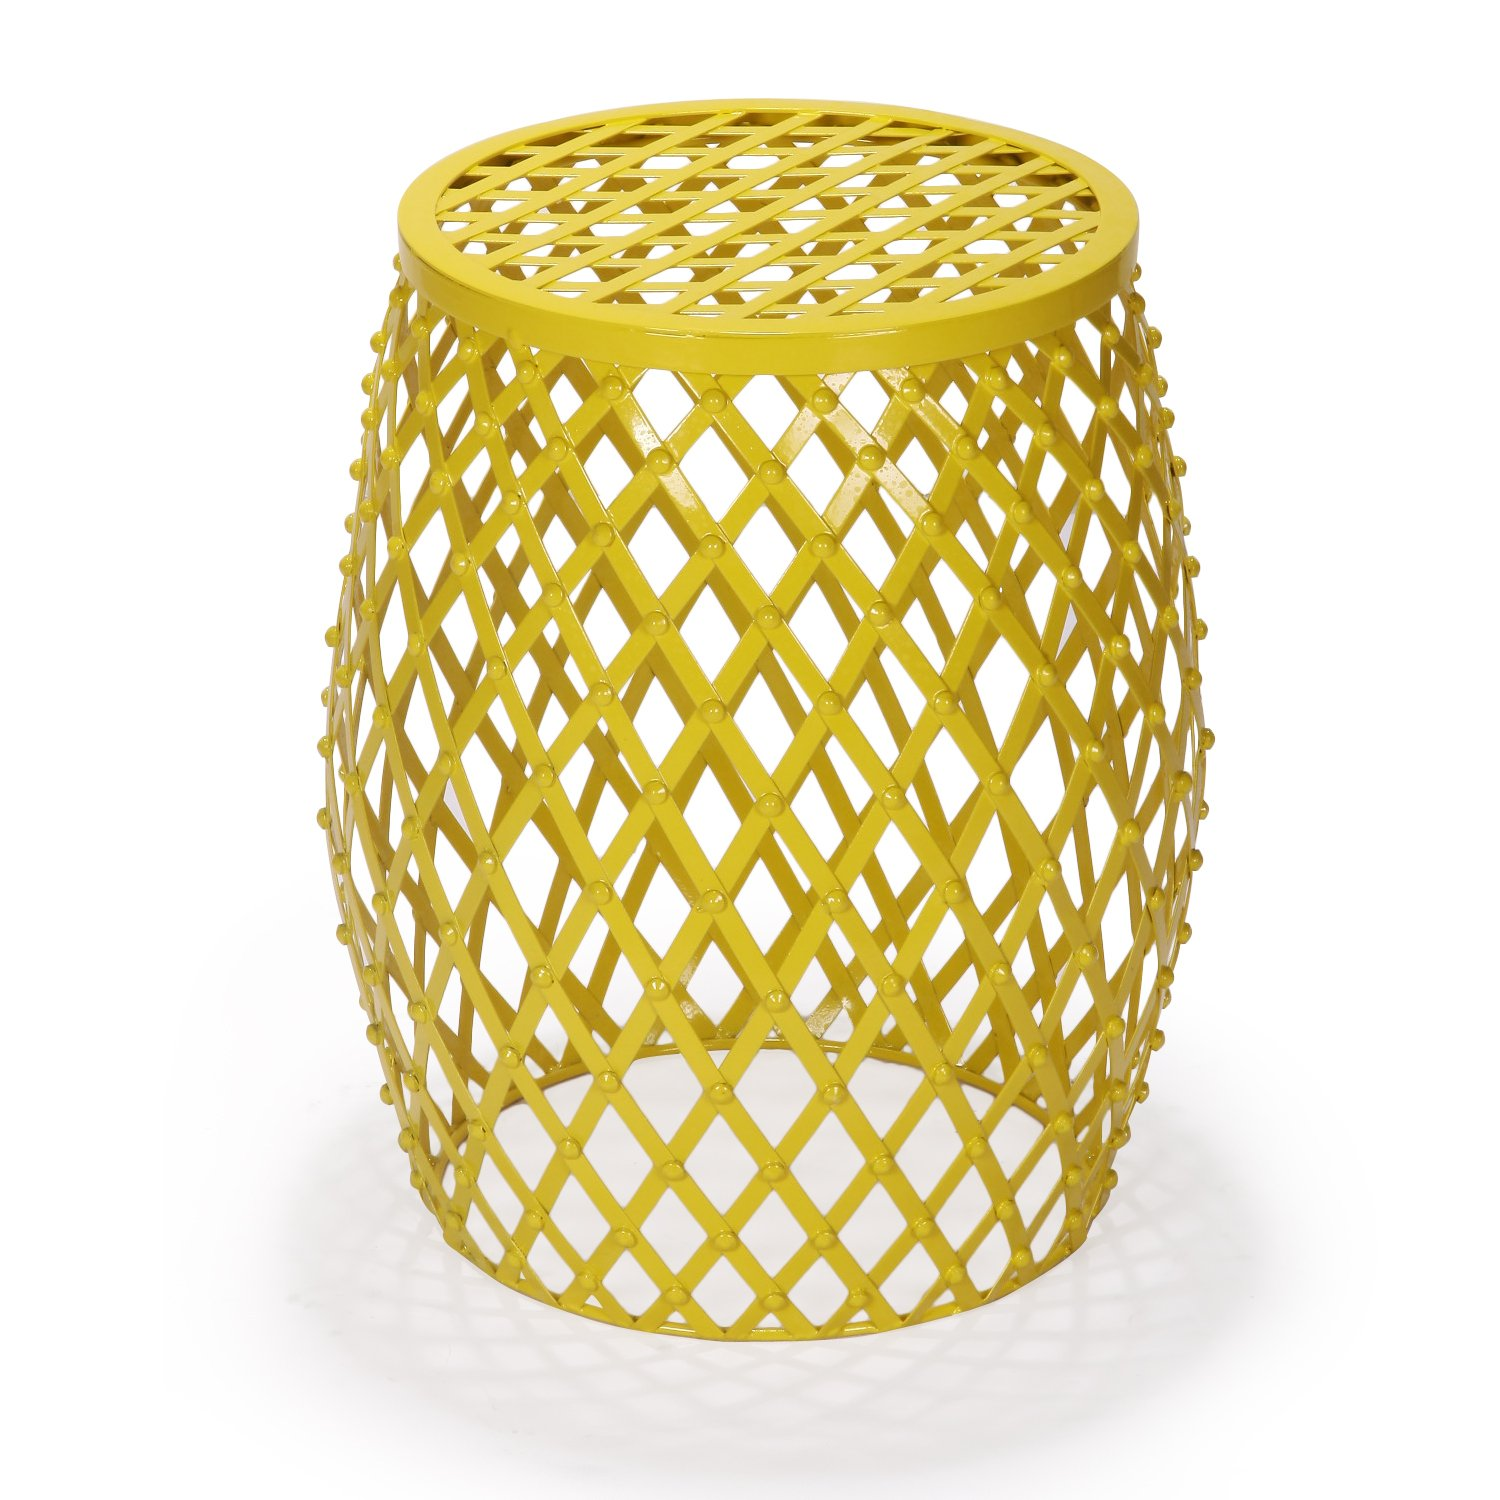 adeco home garden accent round iron metal stool side end table plant stand chair hatched diamond pattern for indoor outdoor bright yellow ikea childrens storage units ashley